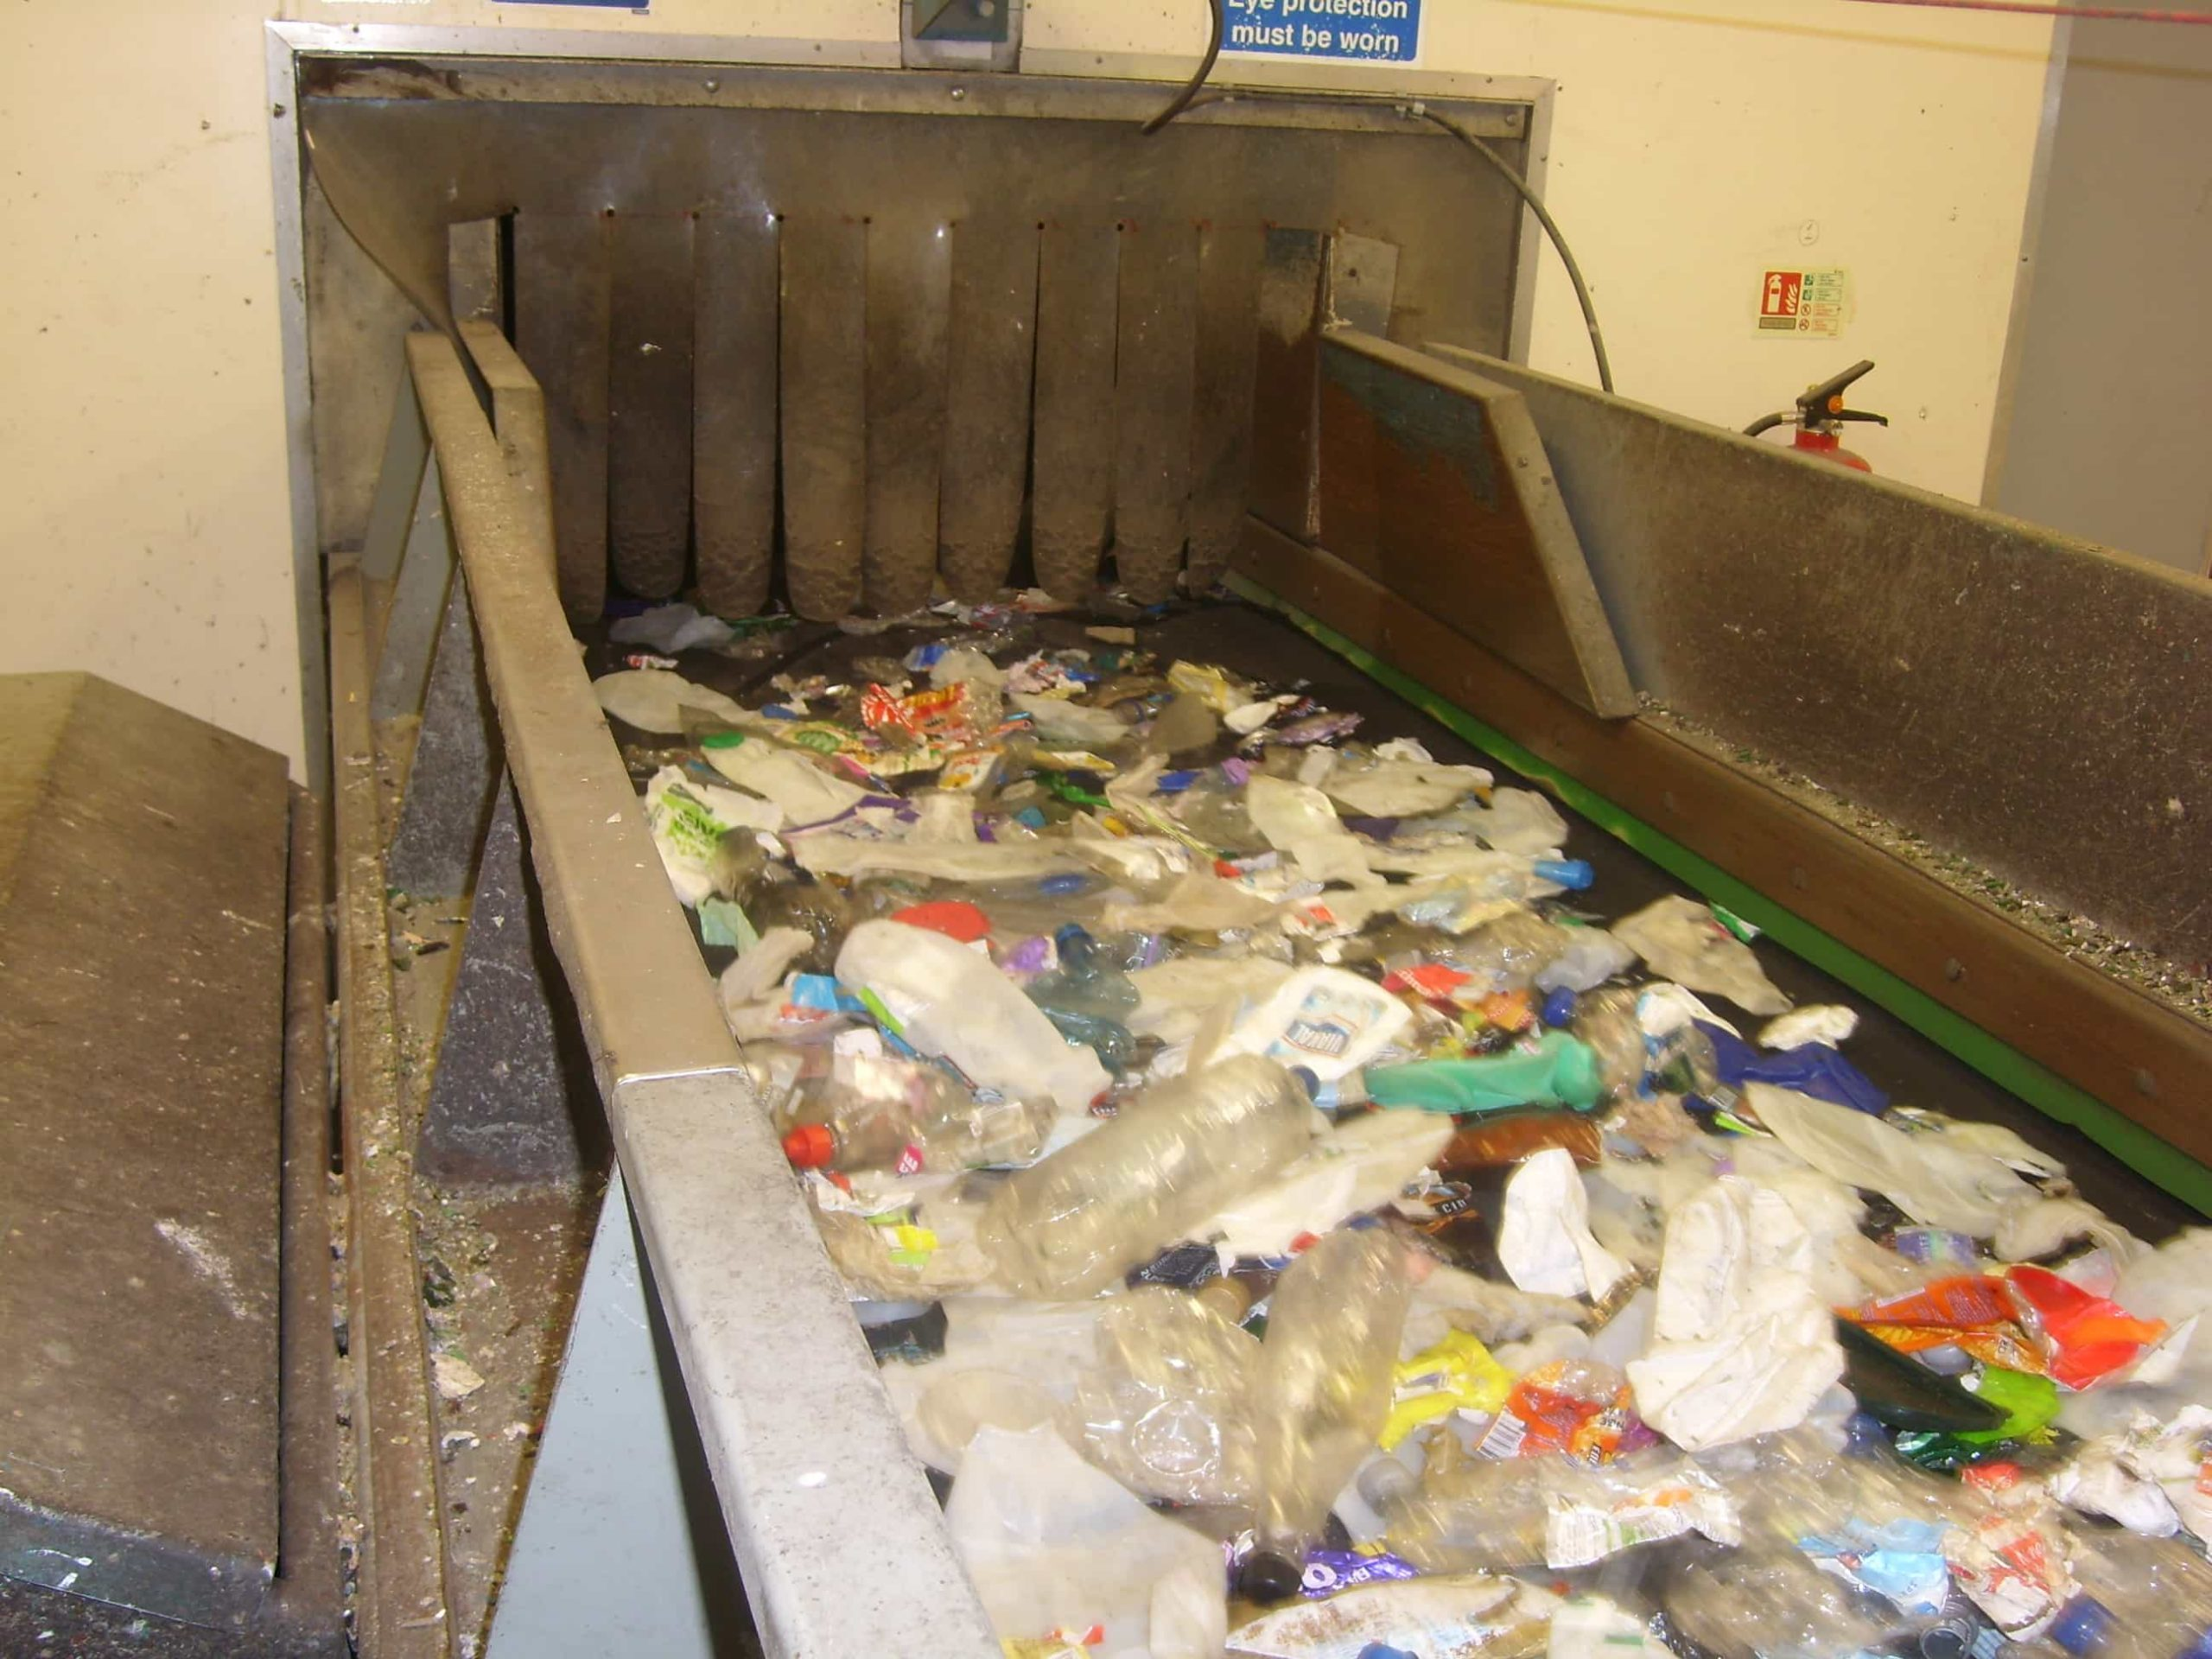 Technological advances could make plastics sorting more sophisticated